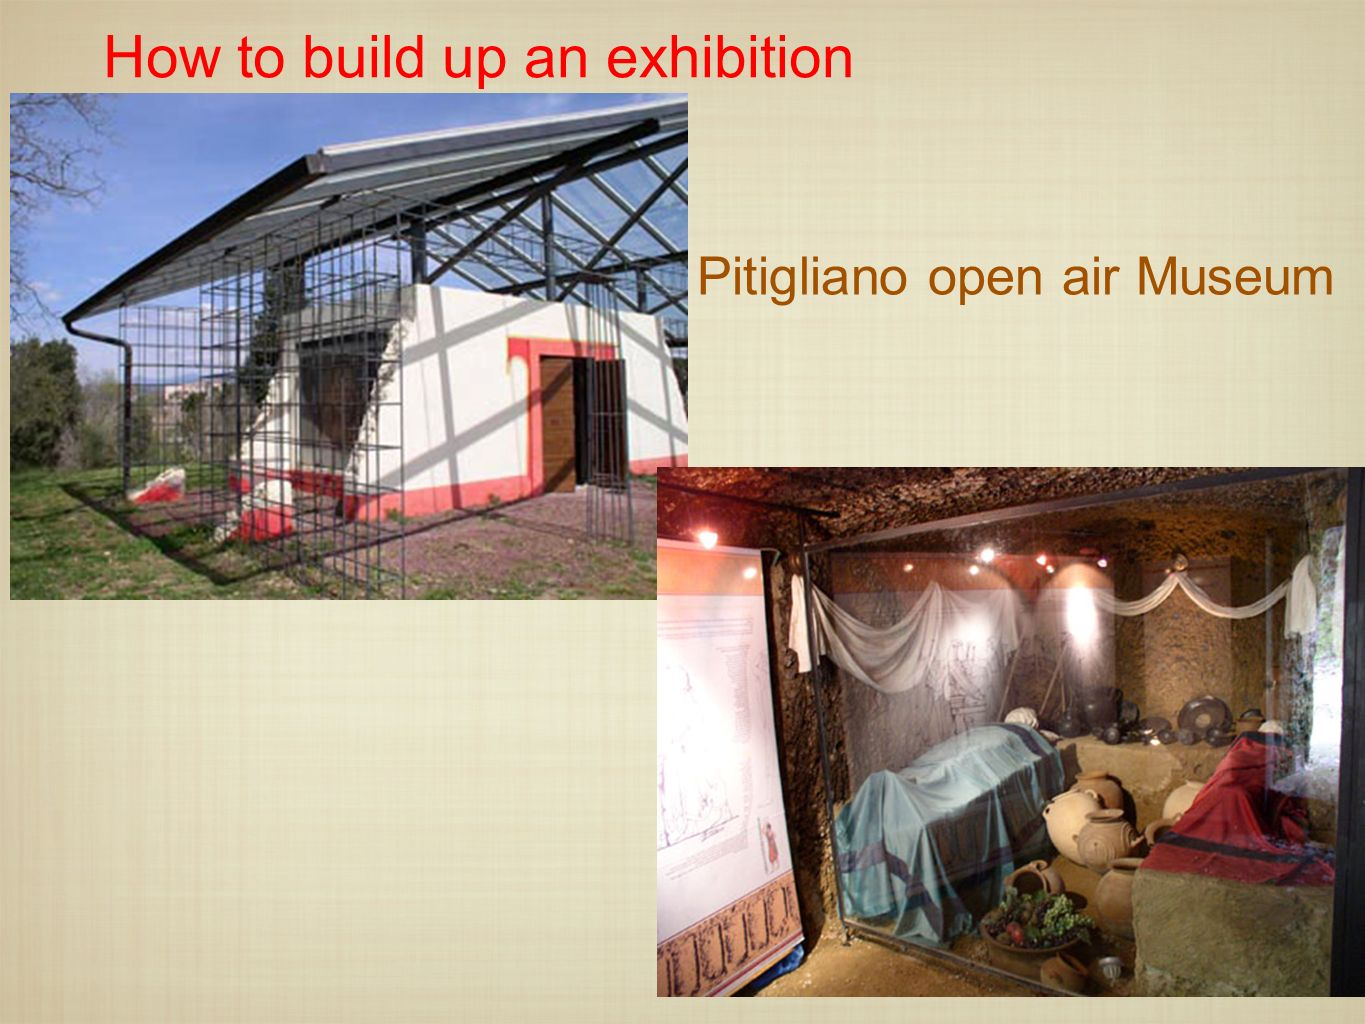 How to build up an exhibition